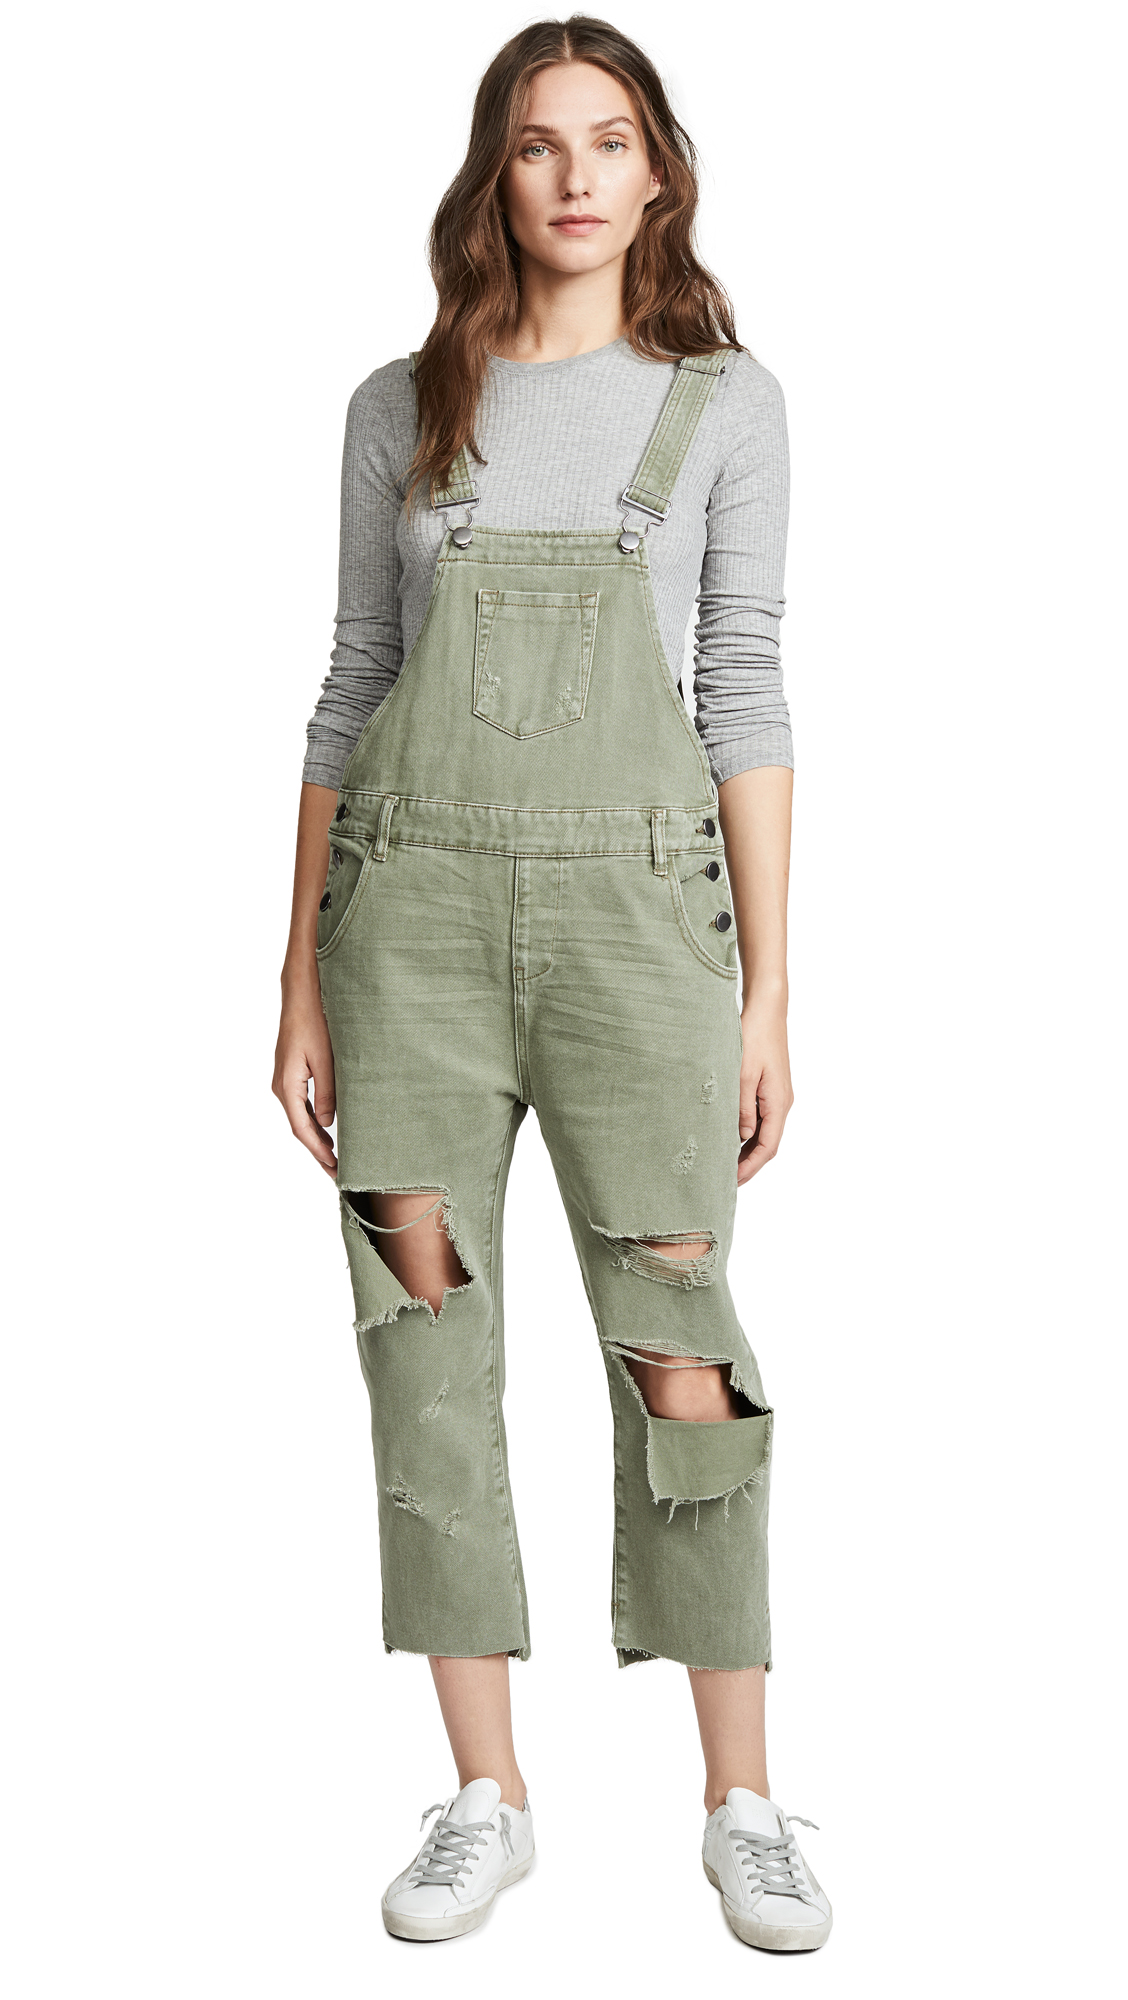 One Teaspoon Hooligan Overalls In Super Khaki